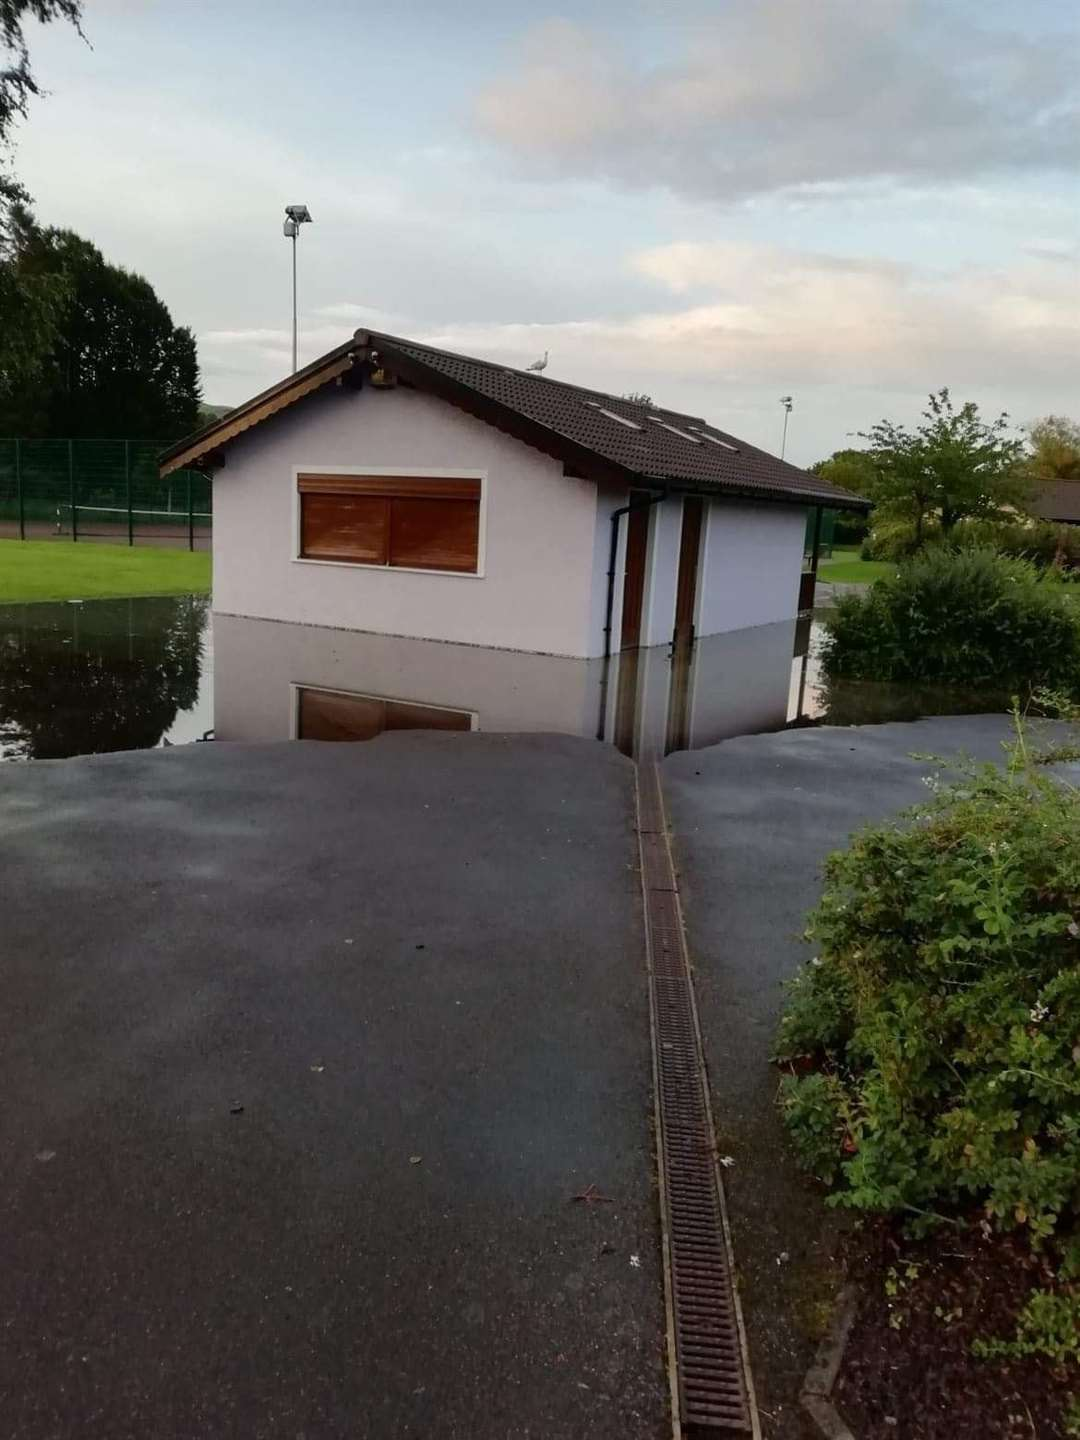 Fresh flooding in Dingwall last week ramped up the tension ahead of a public meeting in town to discuss the issue.